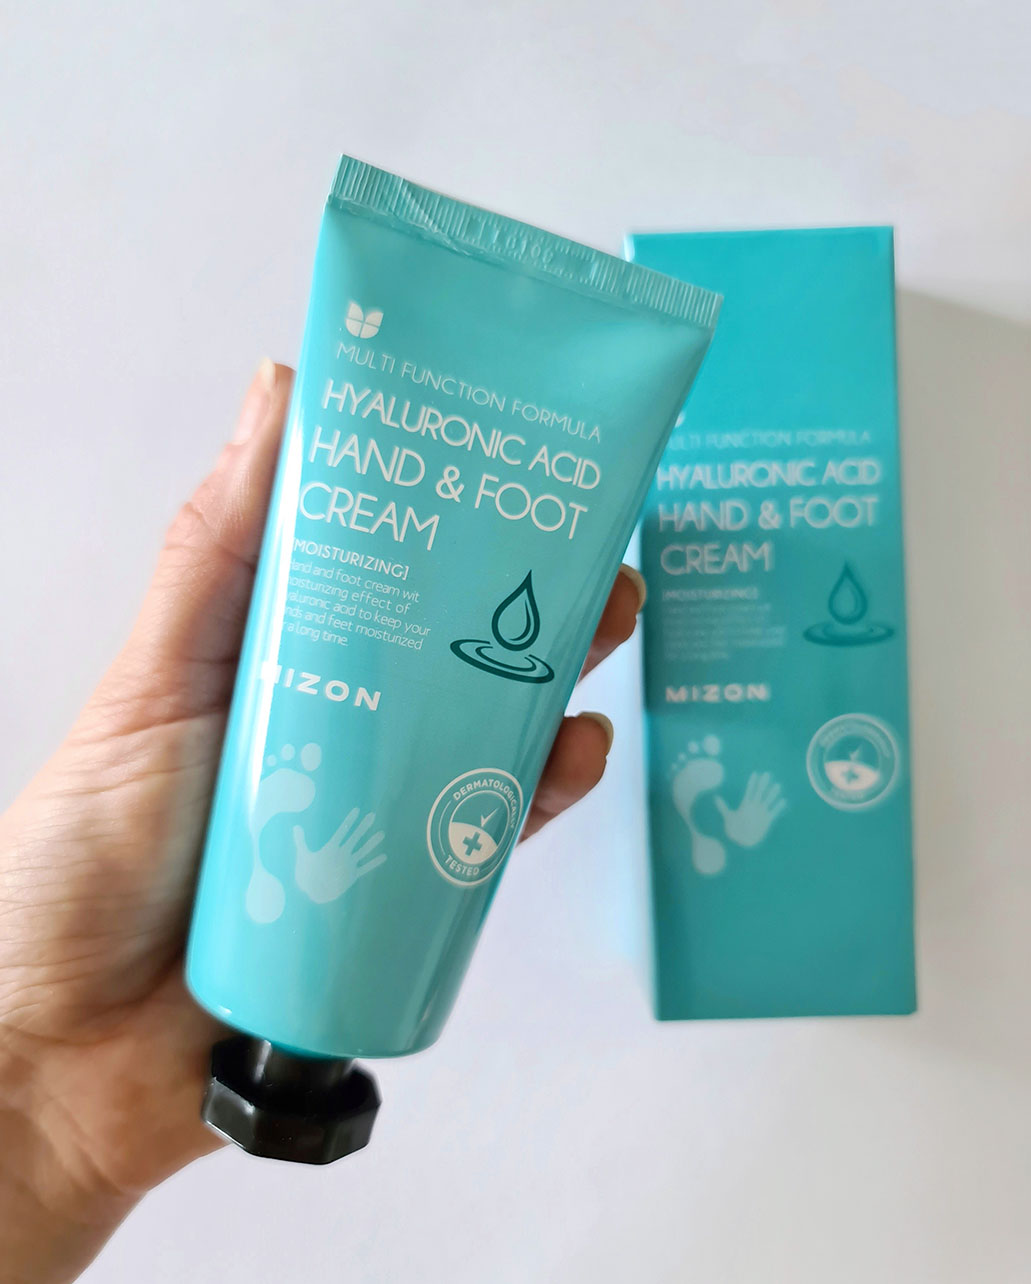 mizon hyaluronic acid hand and foot cream